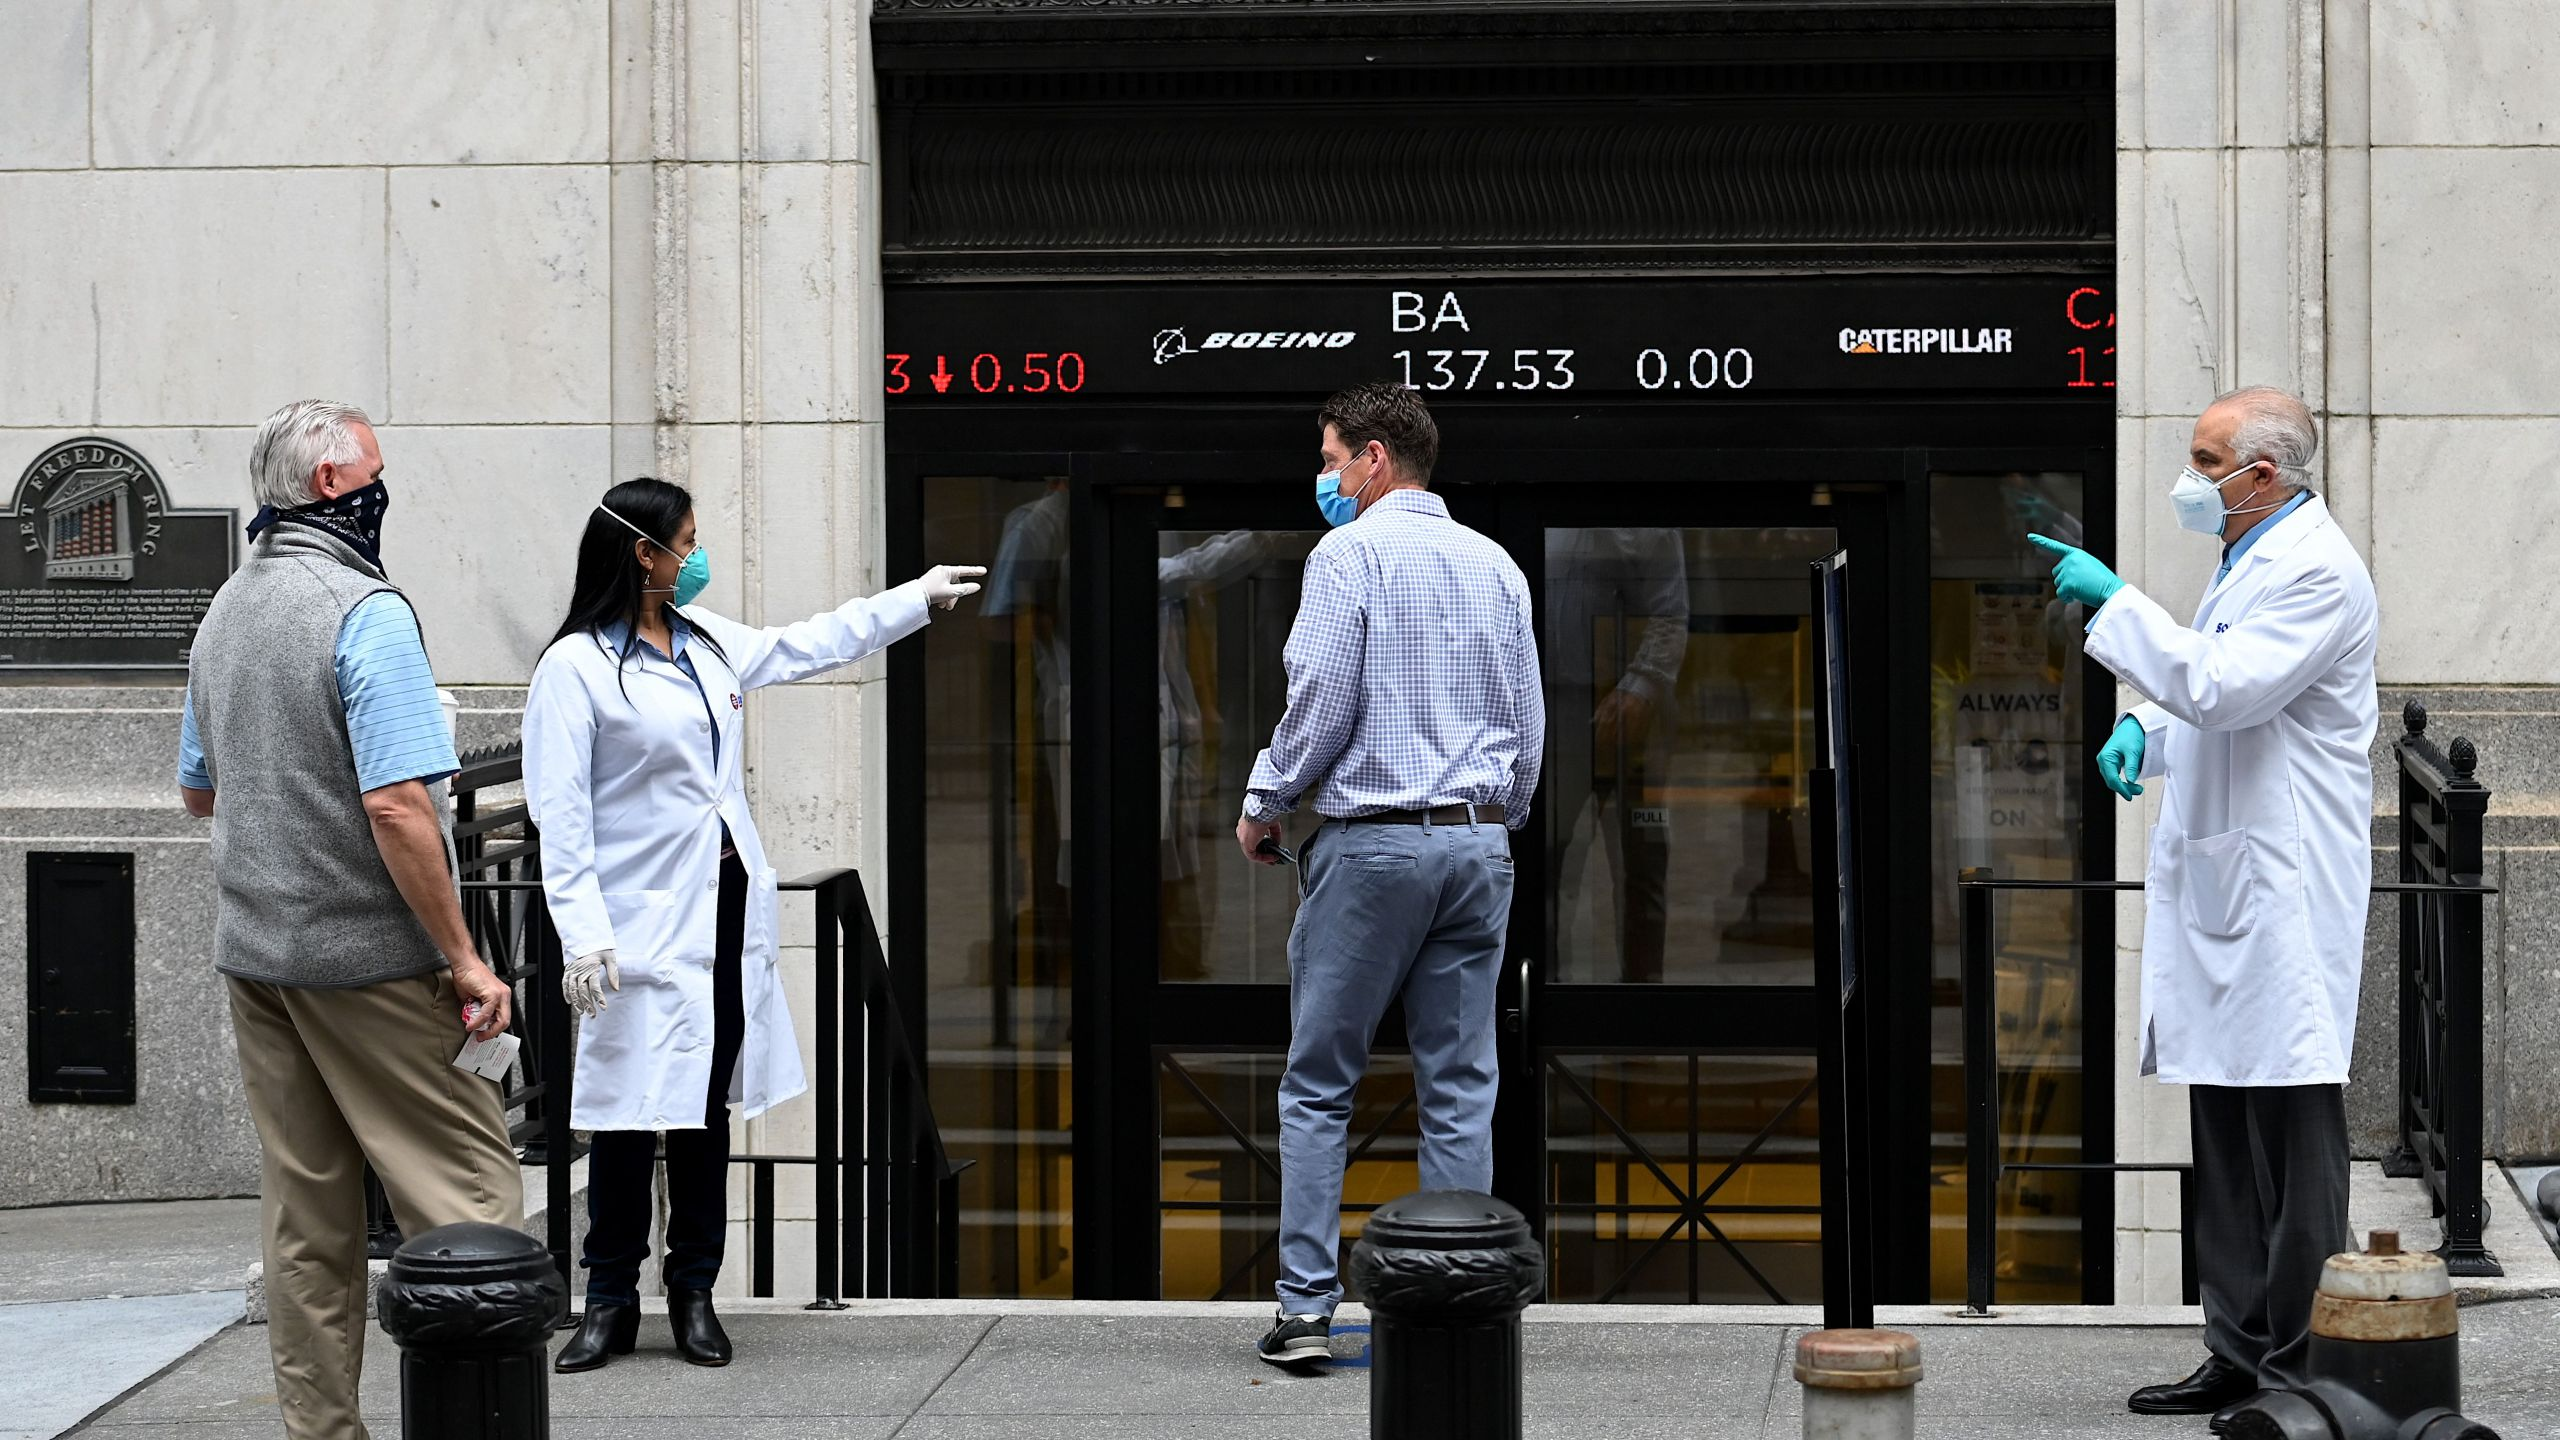 Medical workers check traders wearing masks as they arrive before the opening bell at the New York Stock Exchange on May 26, 2020 at Wall Street in New York City. (JOHANNES EISELE/AFP via Getty Images)